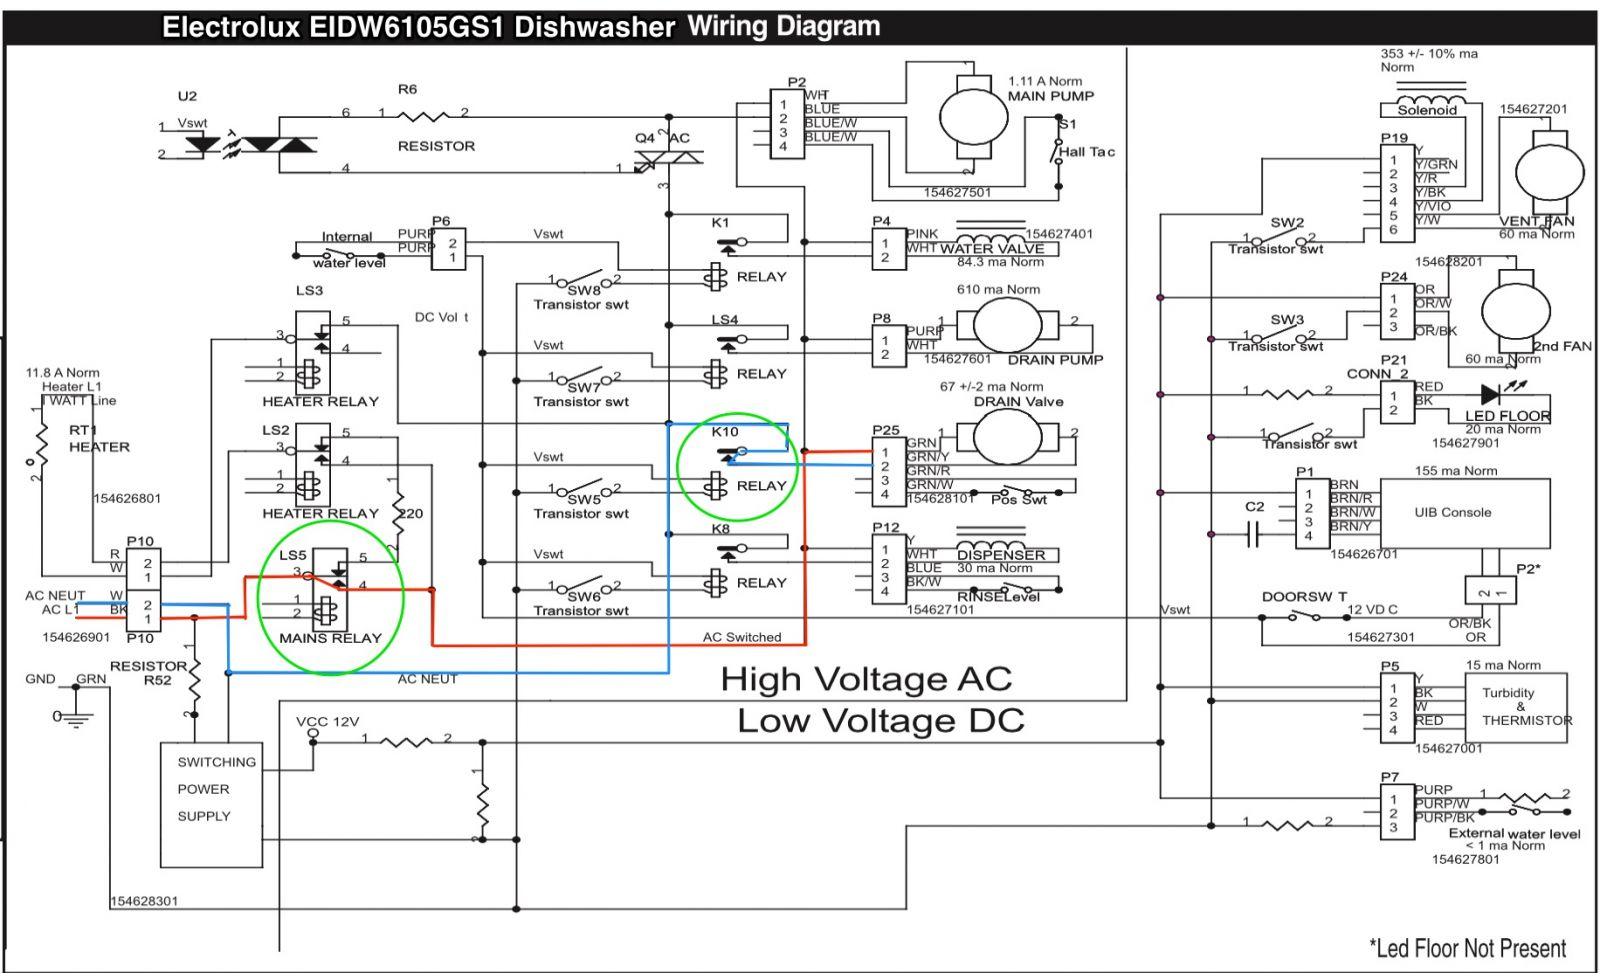 hight resolution of electrolux eidw6105gs1 dishwasher wiring diagram the appliantology frigidaire dishwasher wiring diagram dishwasher wiring diagram